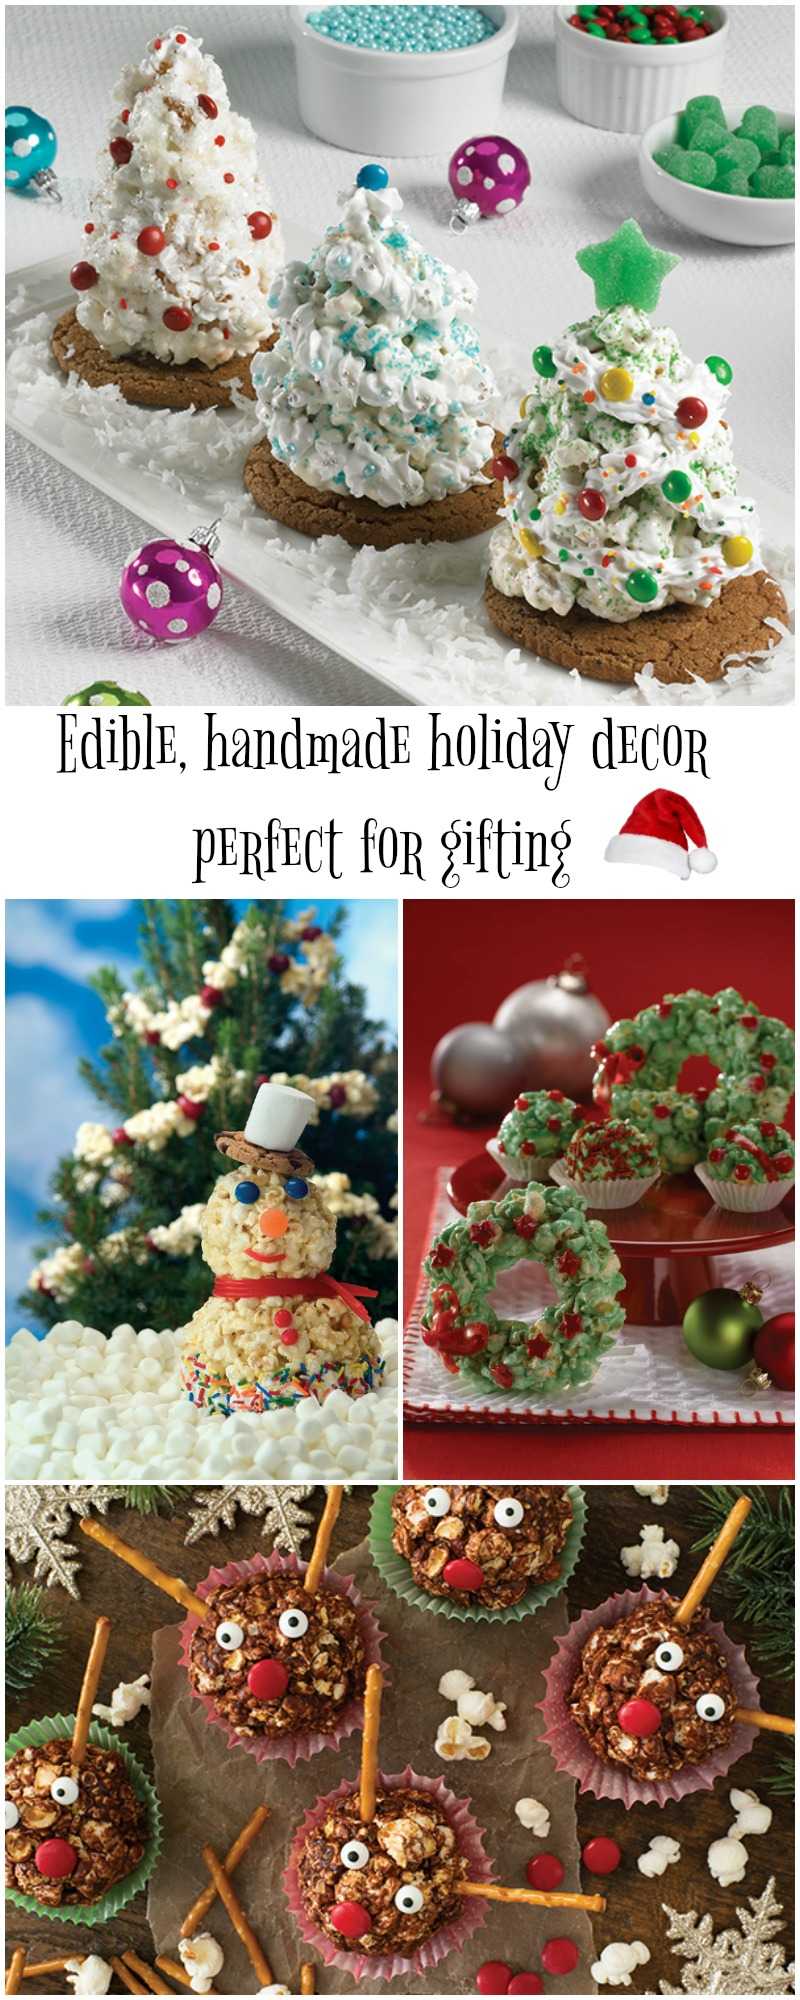 Popping Up a Winter Wonderland with Edible, Handmade Decor